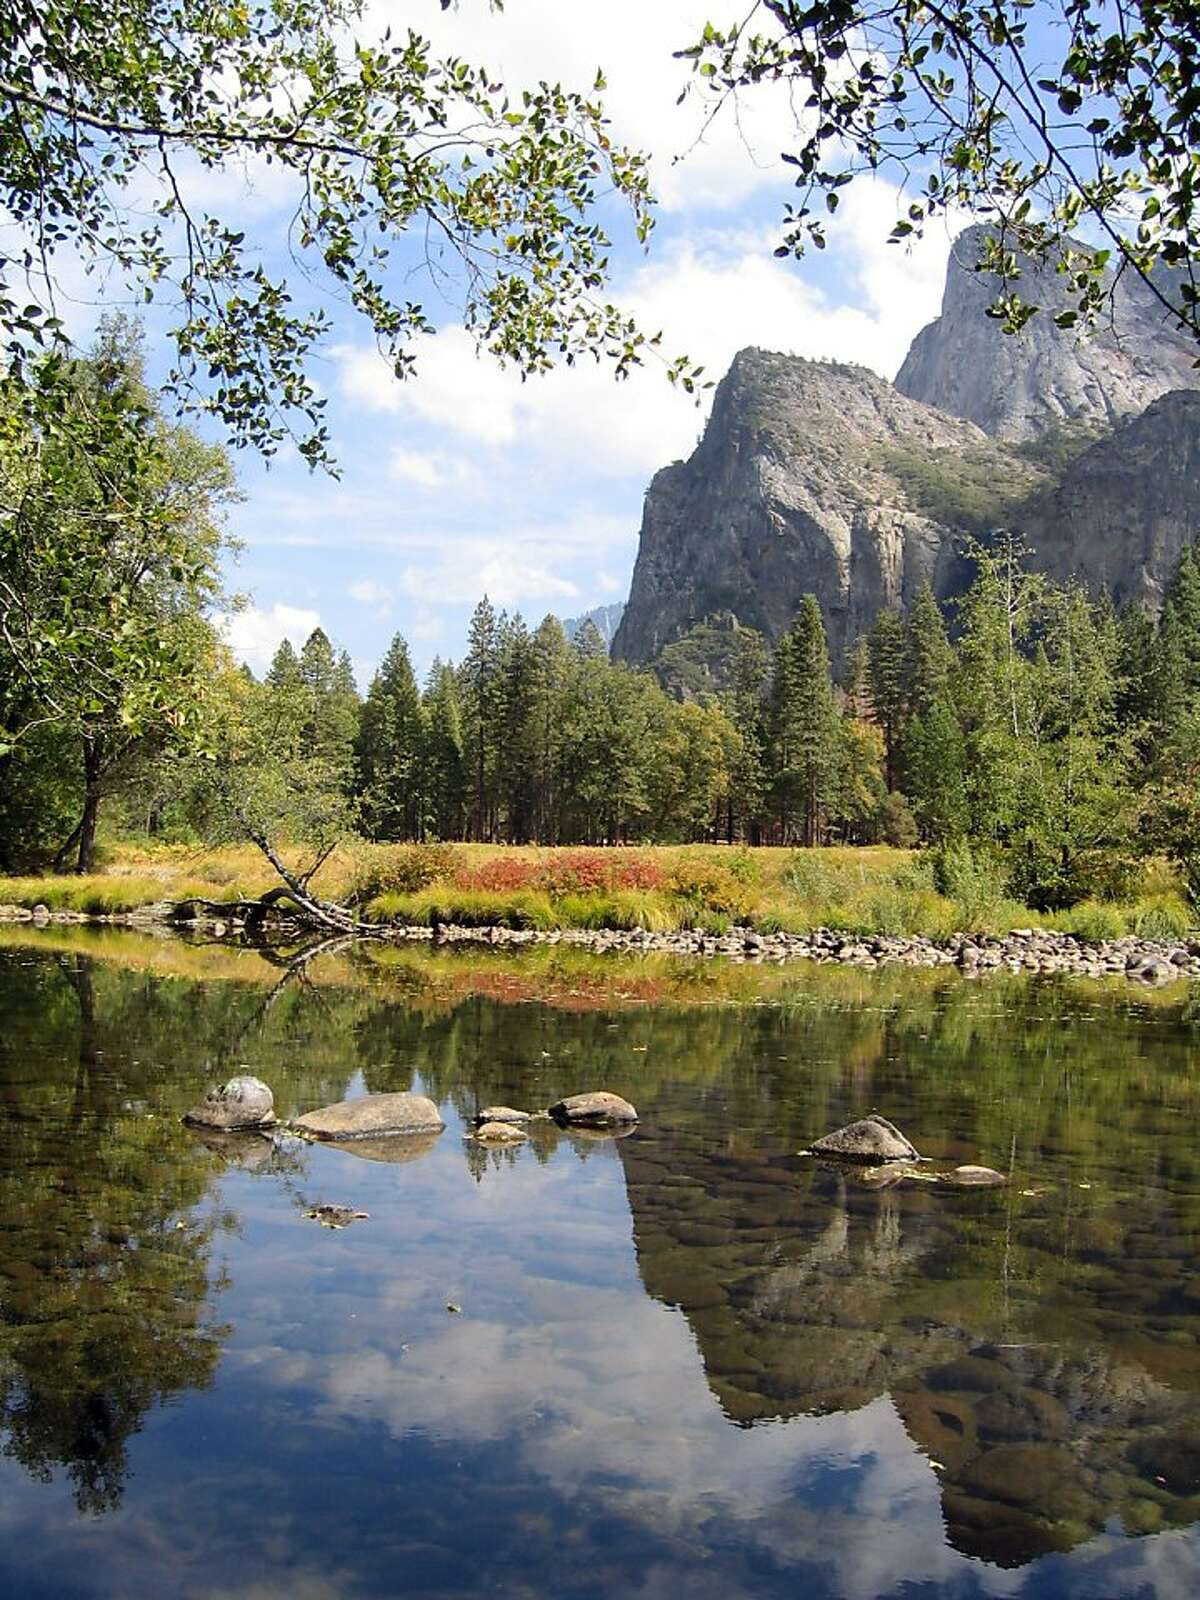 A file photo of the Merced River in California's Yosemite National Park.